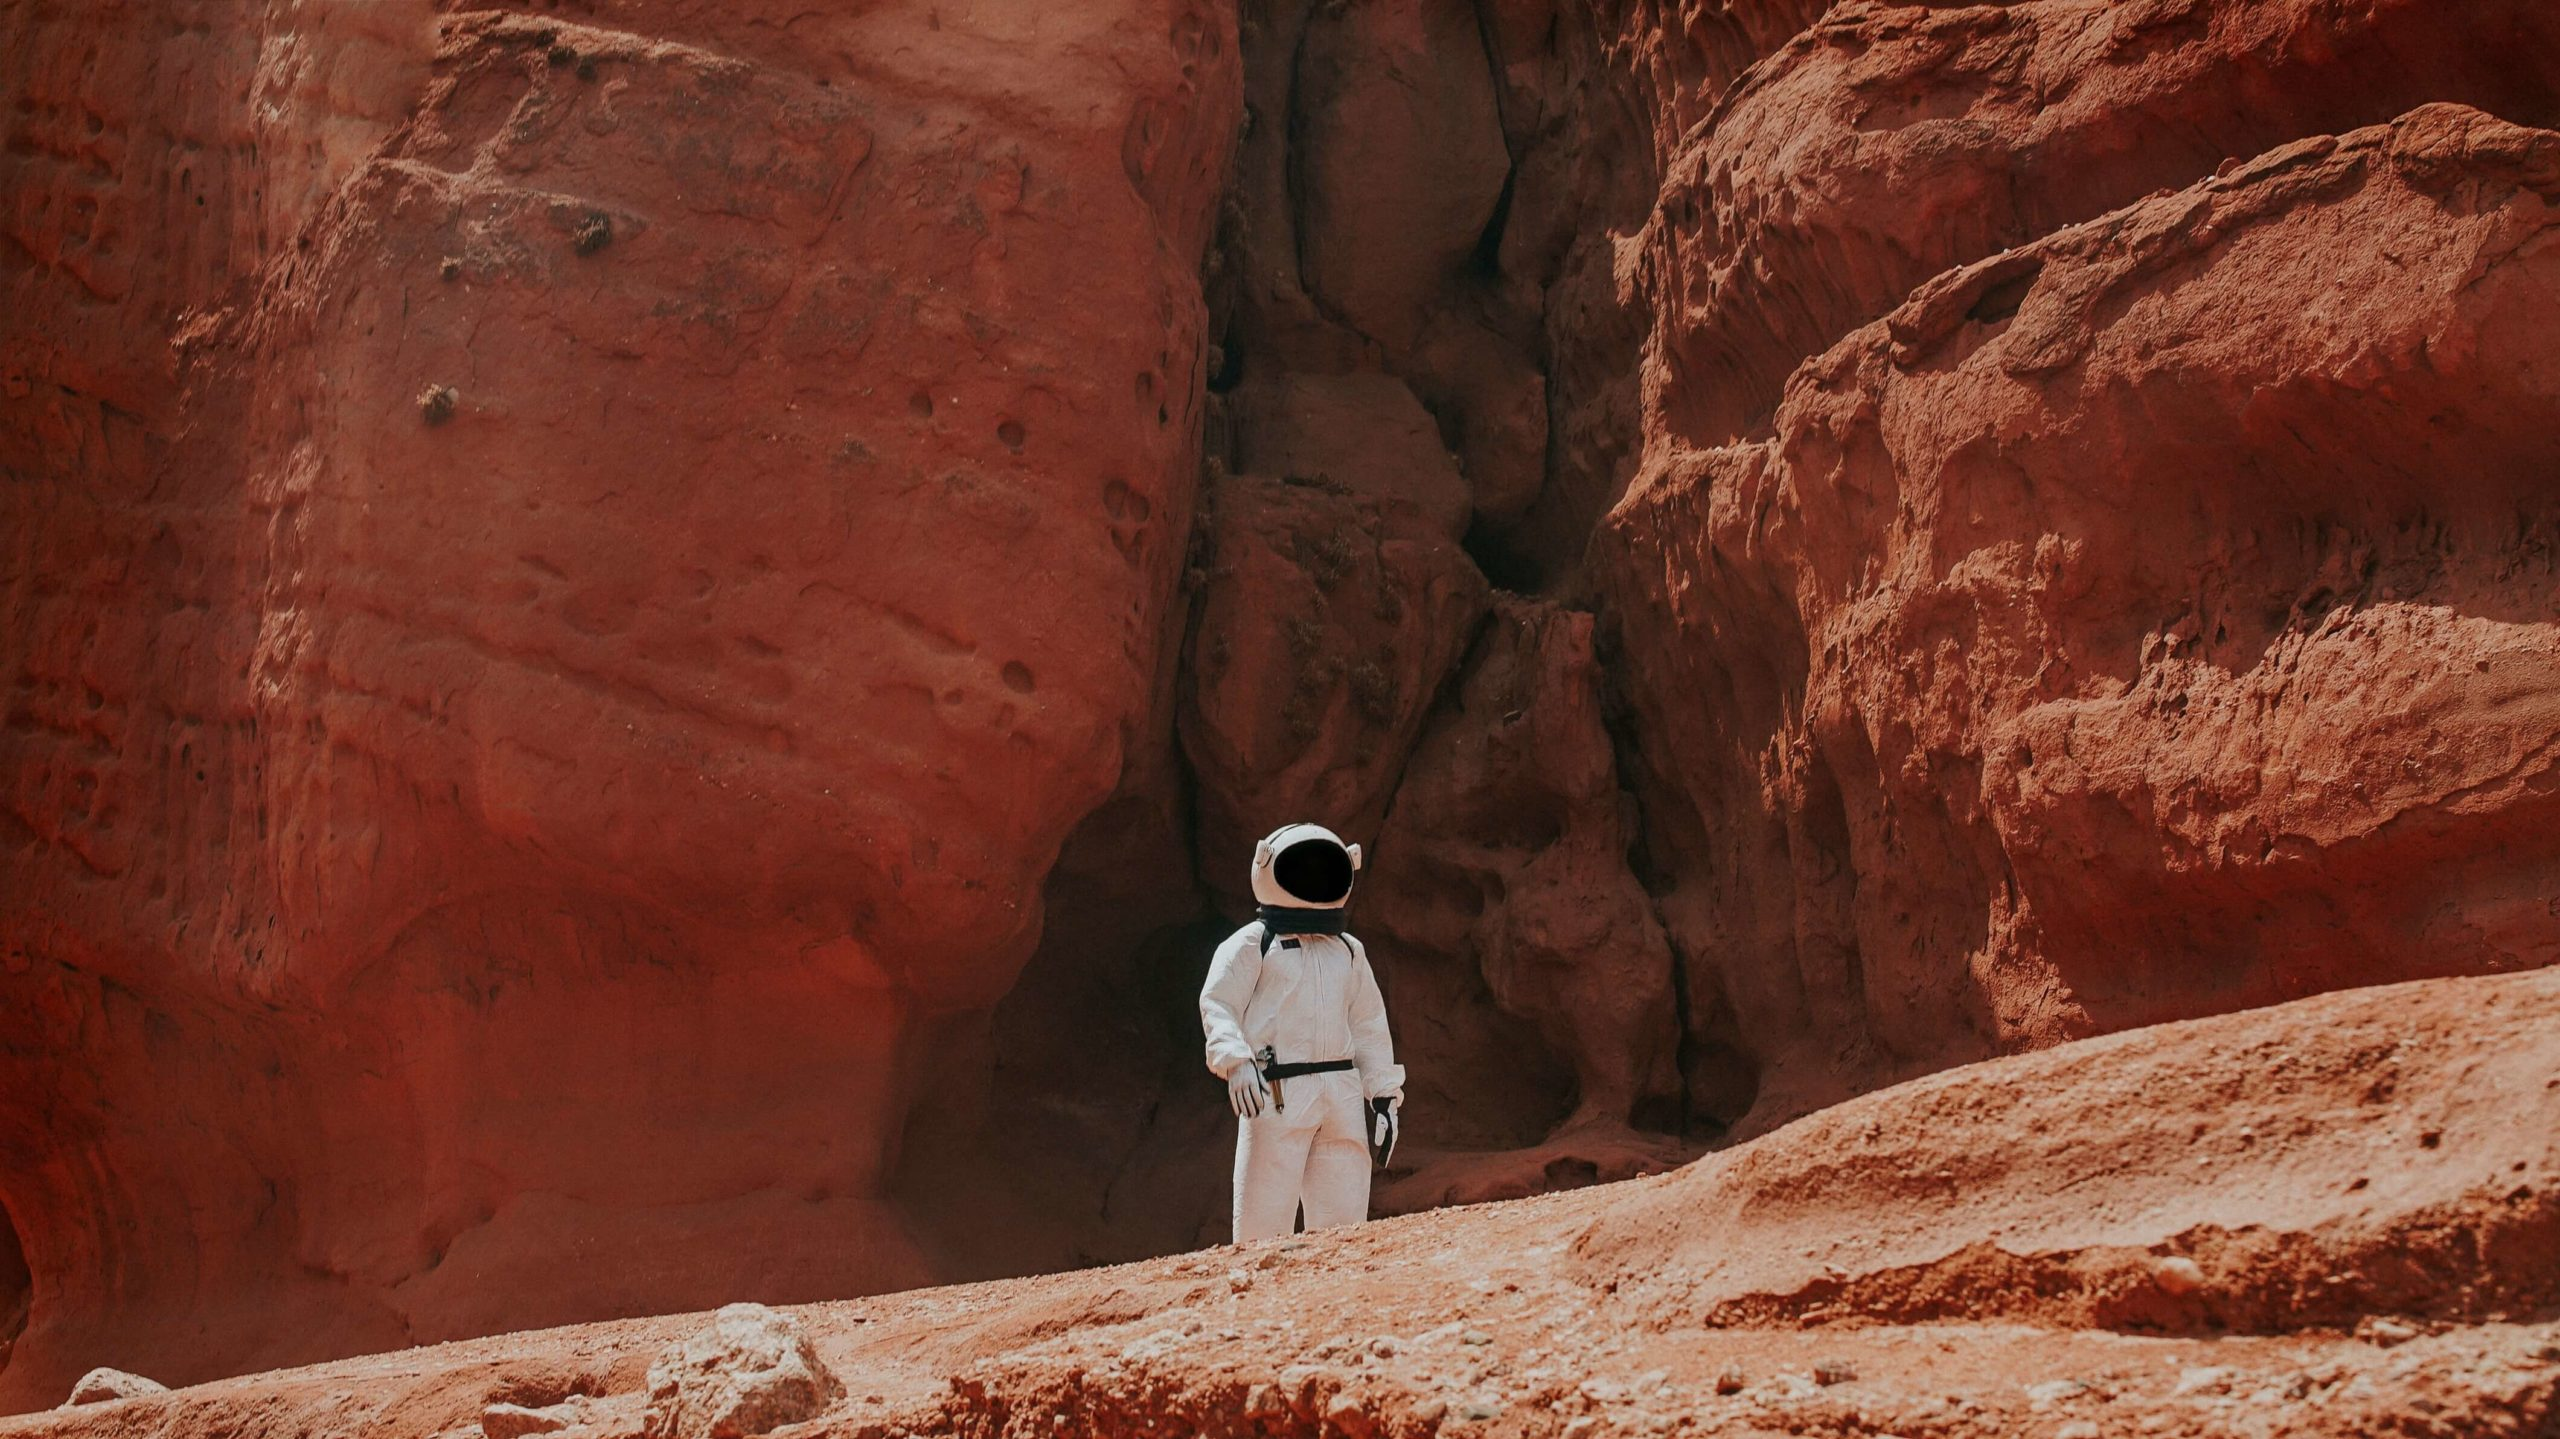 Astronomer standing by red stones. This is how it might look like when astronomers walk on Mars